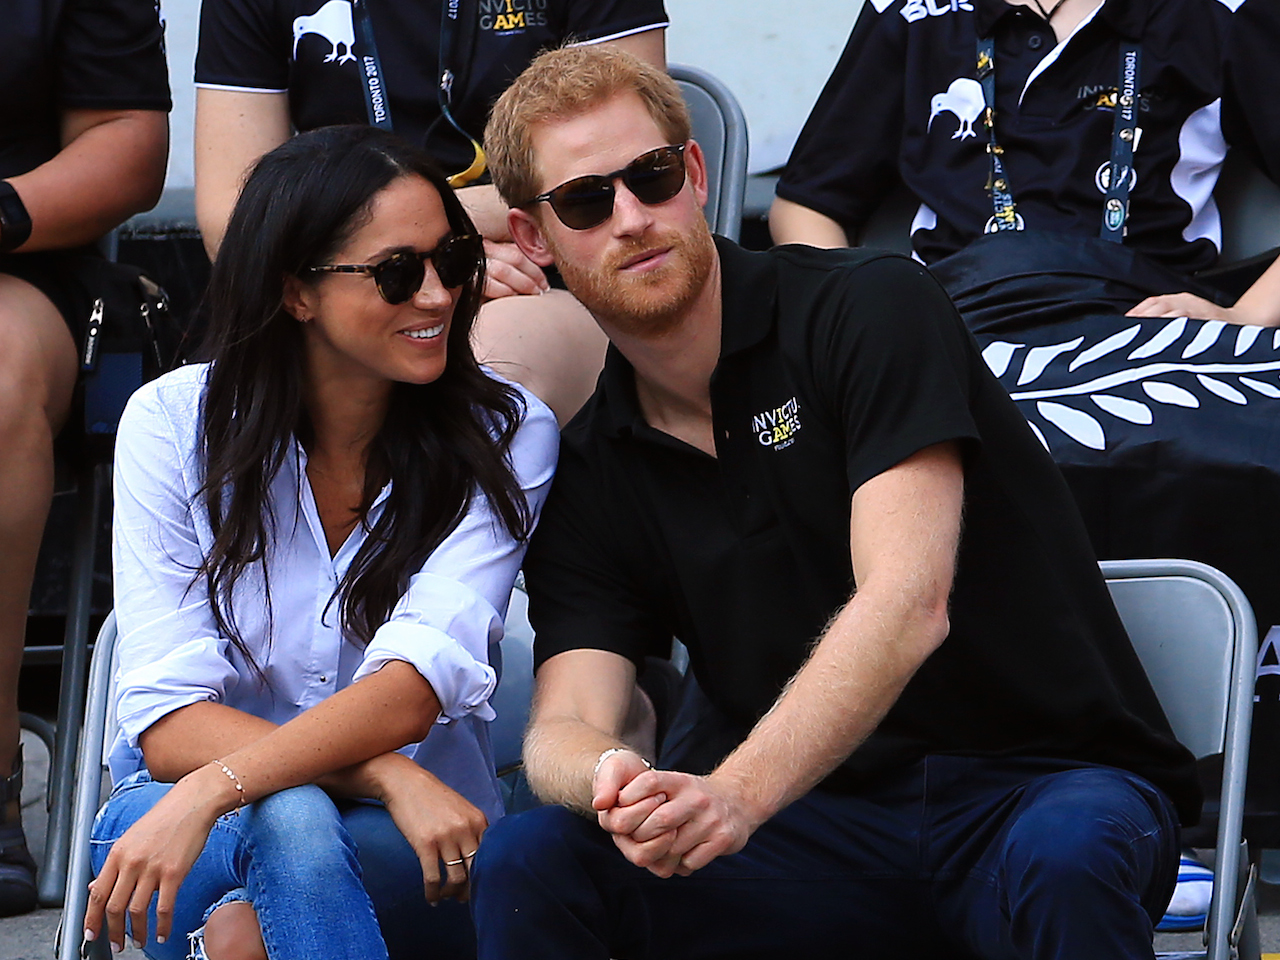 Prince Harry reportedly proposed to Meghan Markle